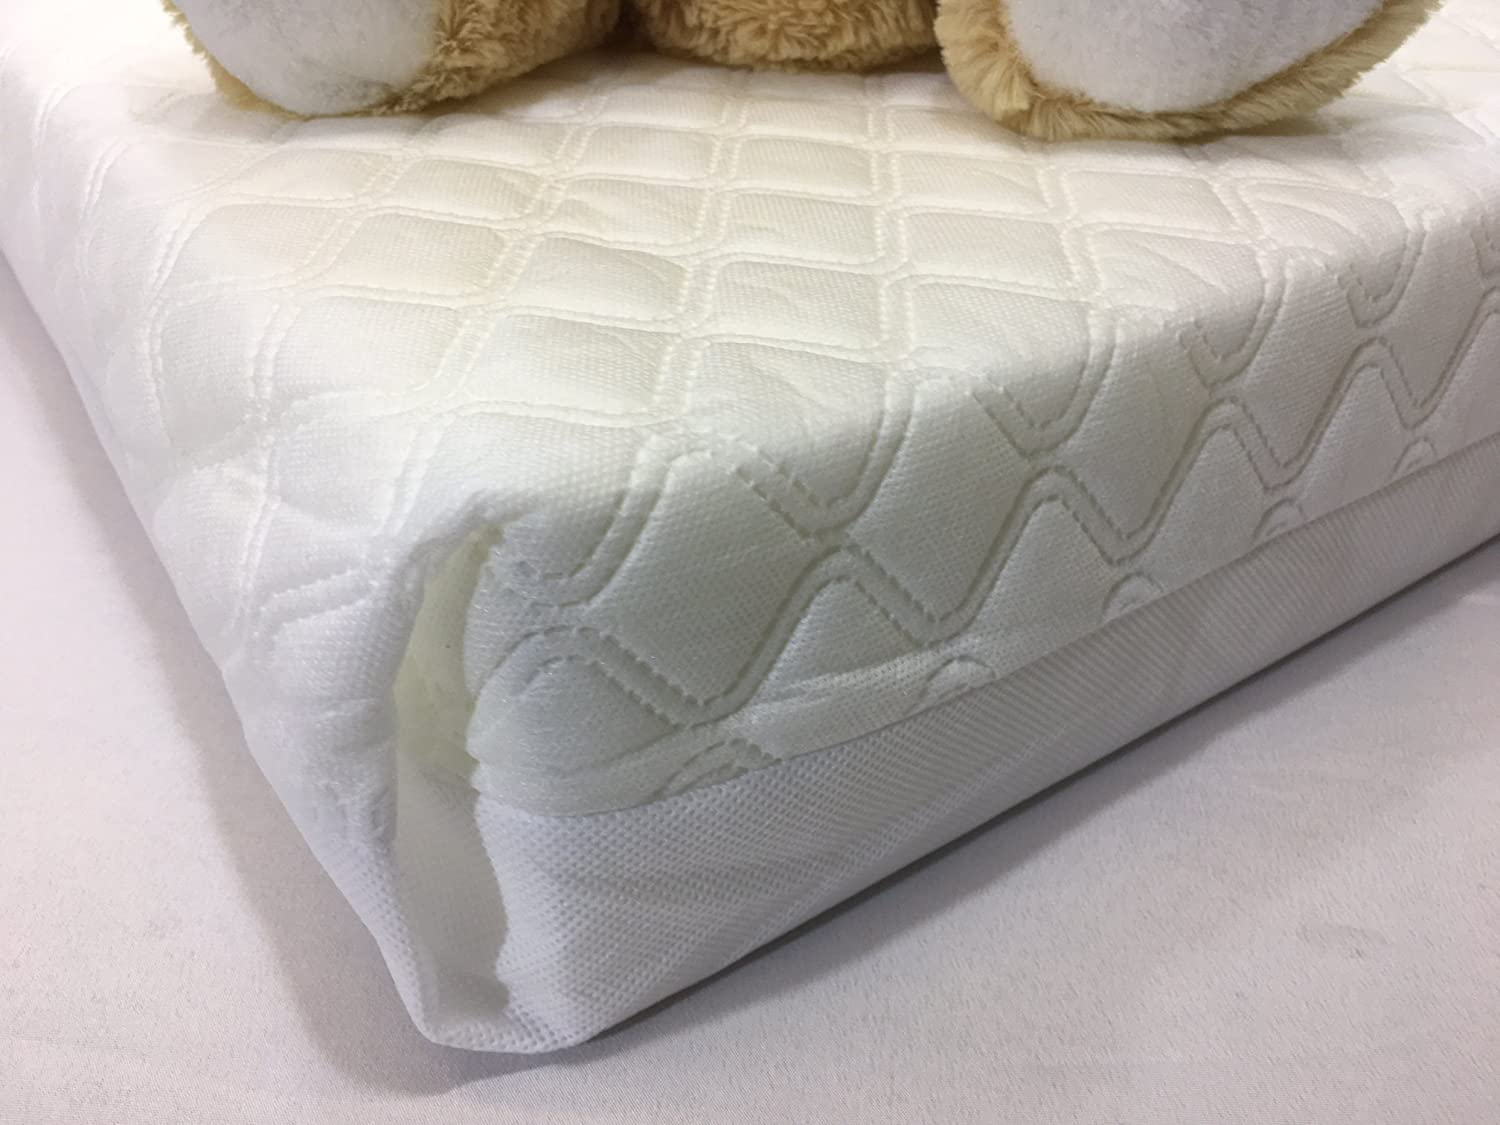 Travel Cot Mattress 110x70cm Size and 10cm Thick So More Comfy cot Bed